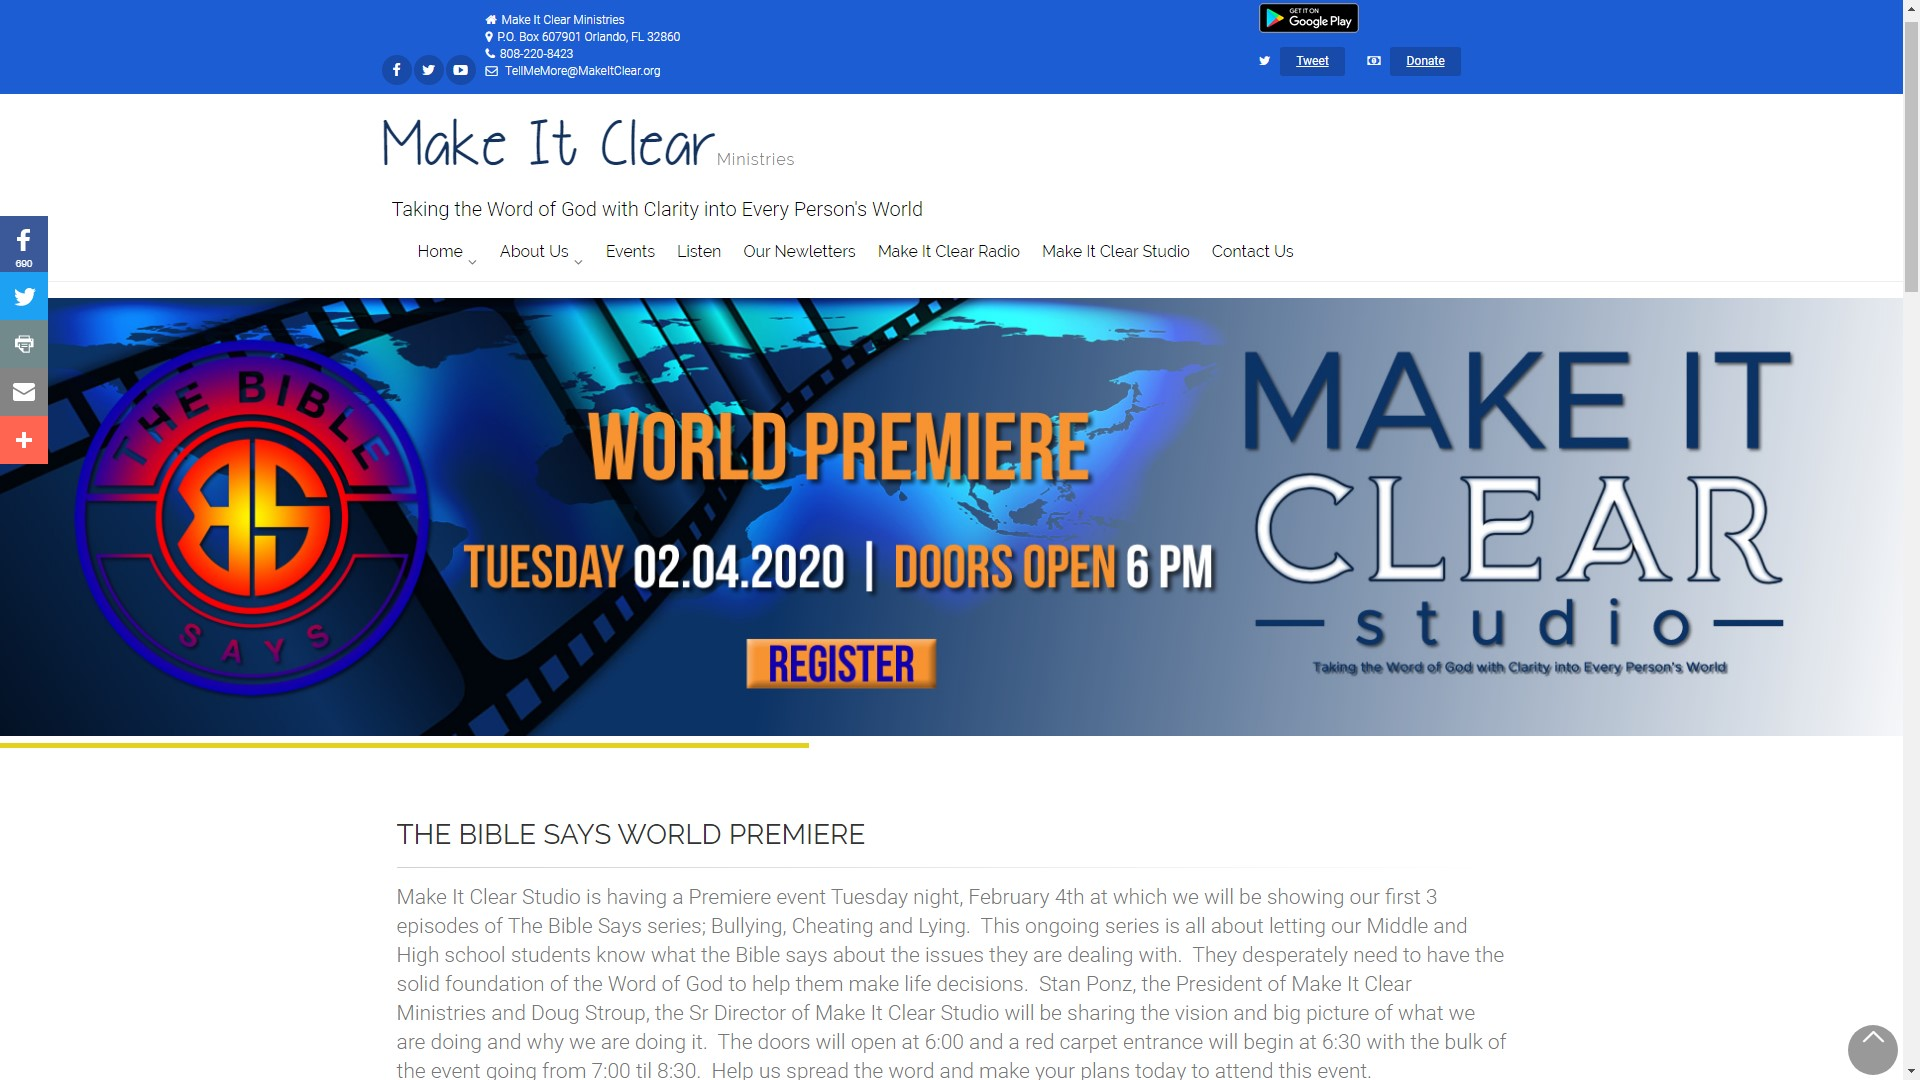 Make It Clear Ministries